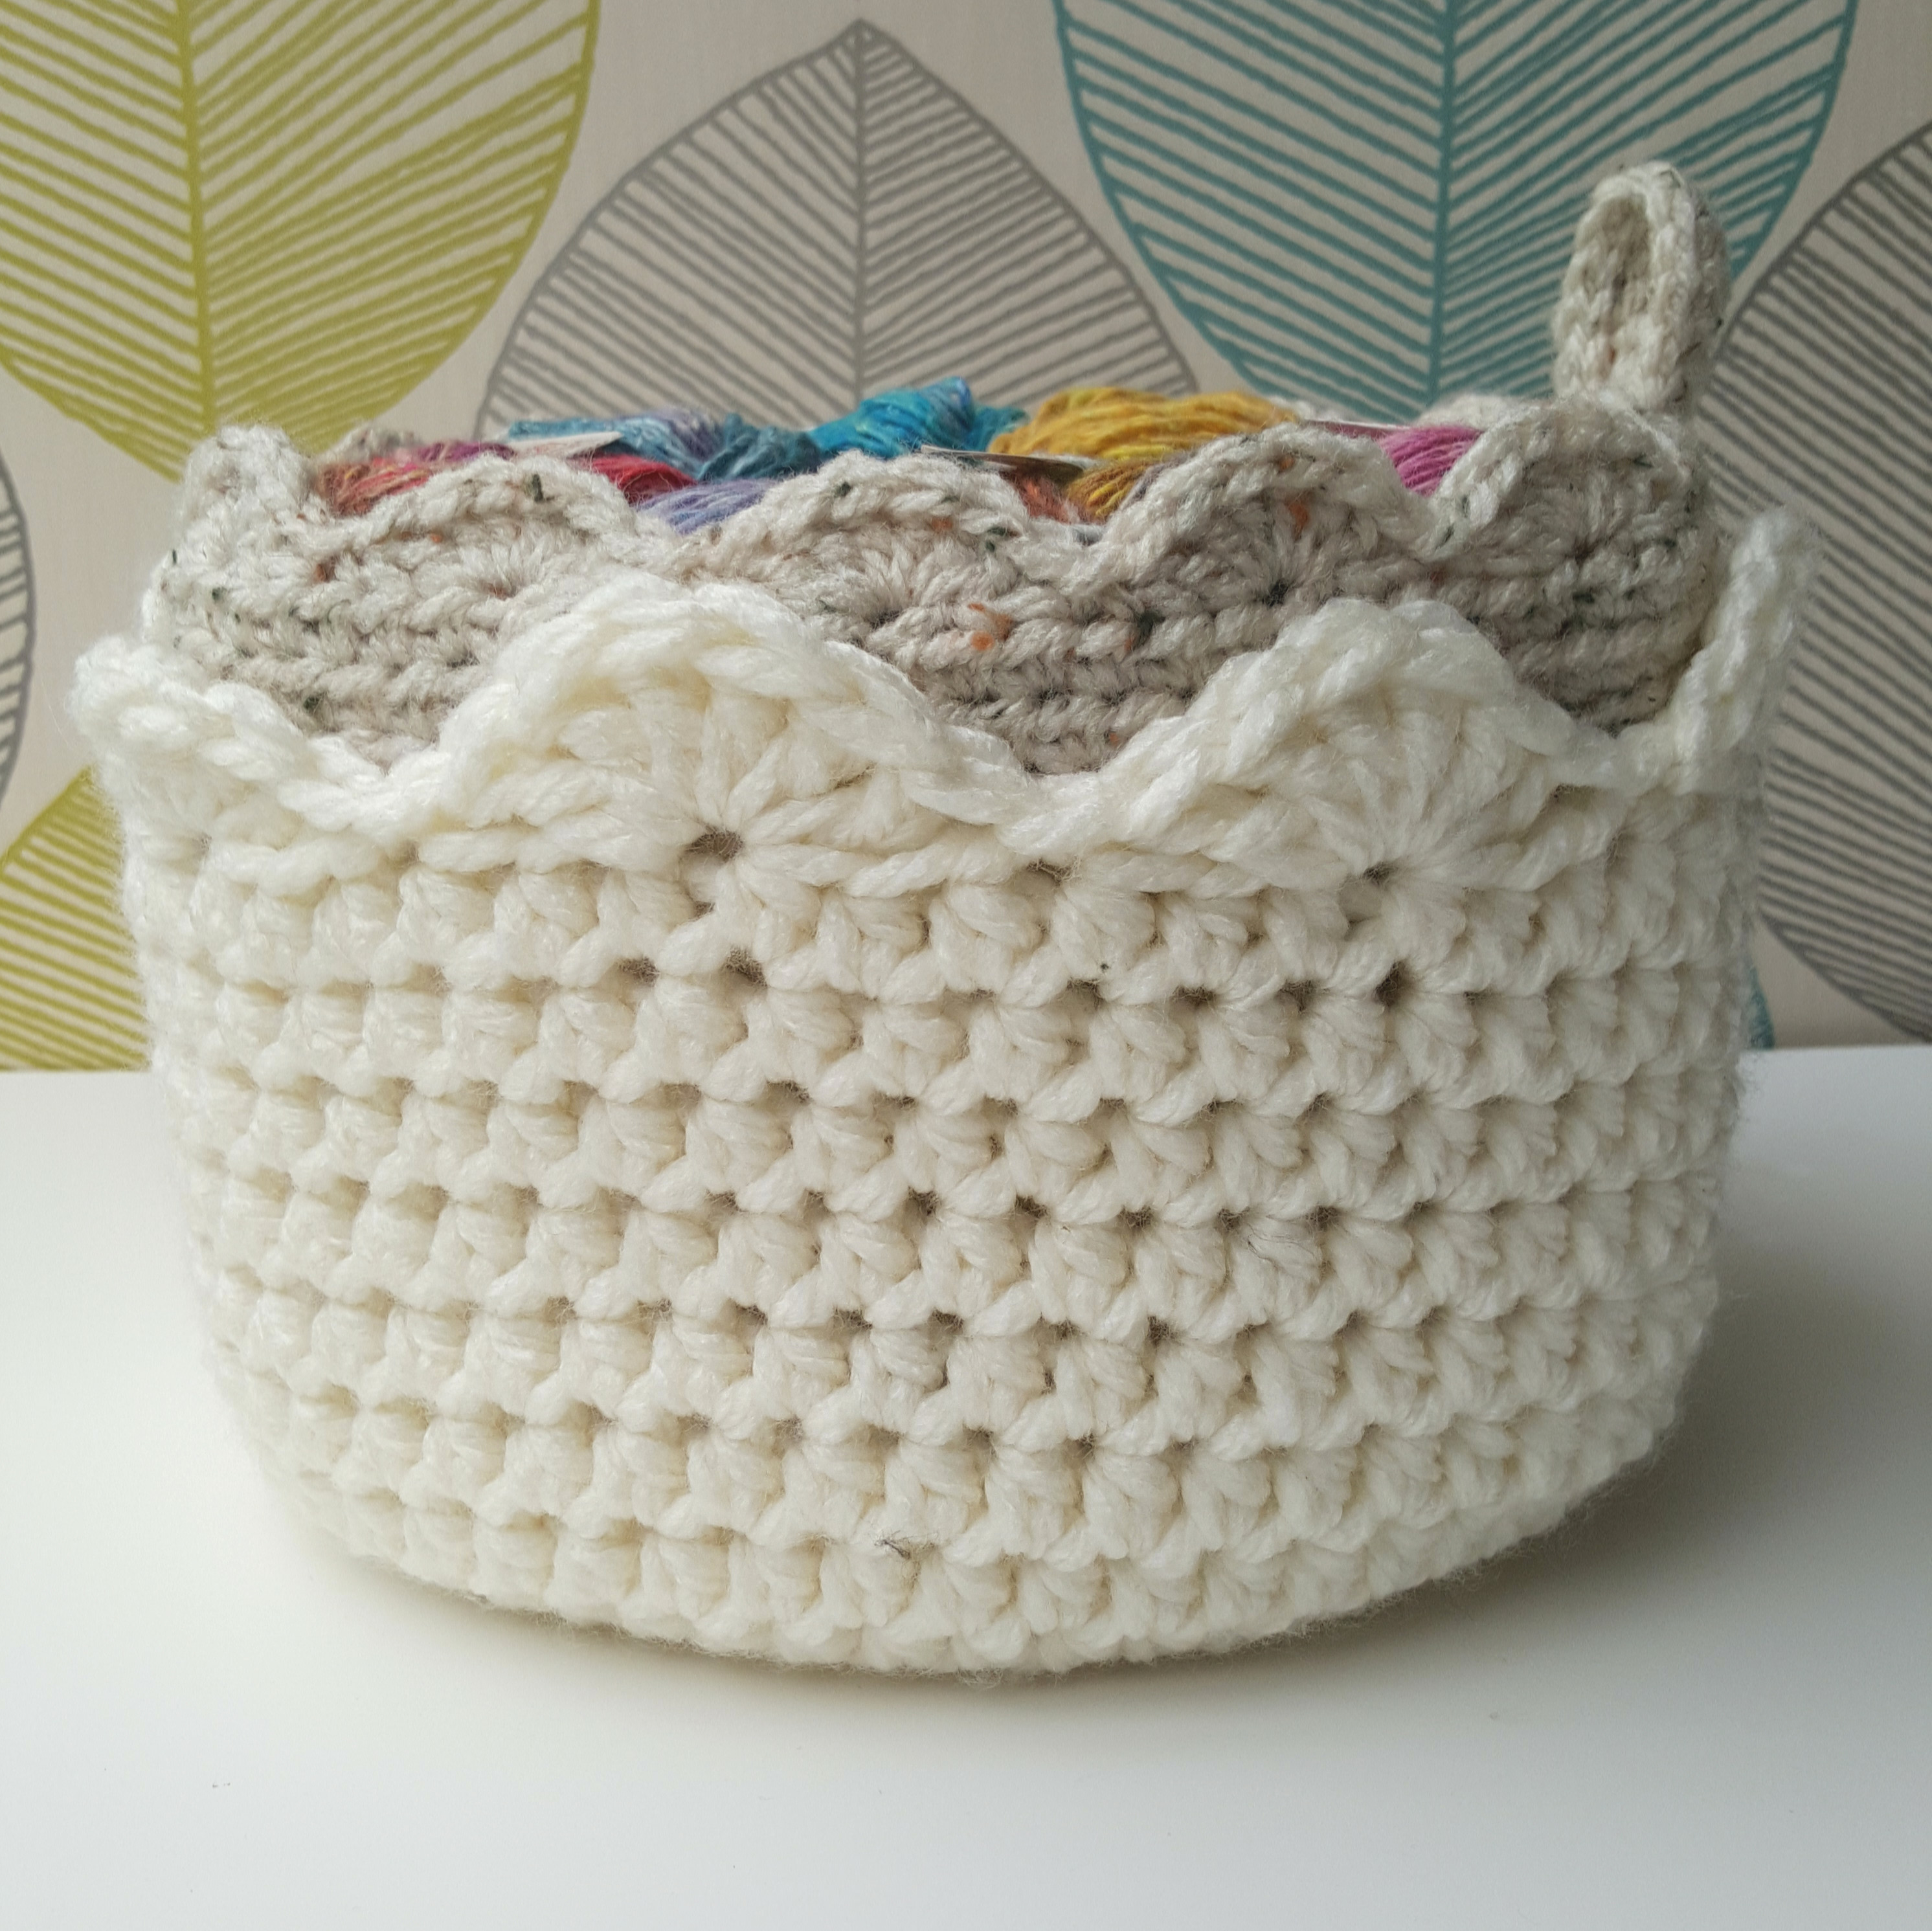 How to Crochet a Basket FREE Tutorial & Pattern